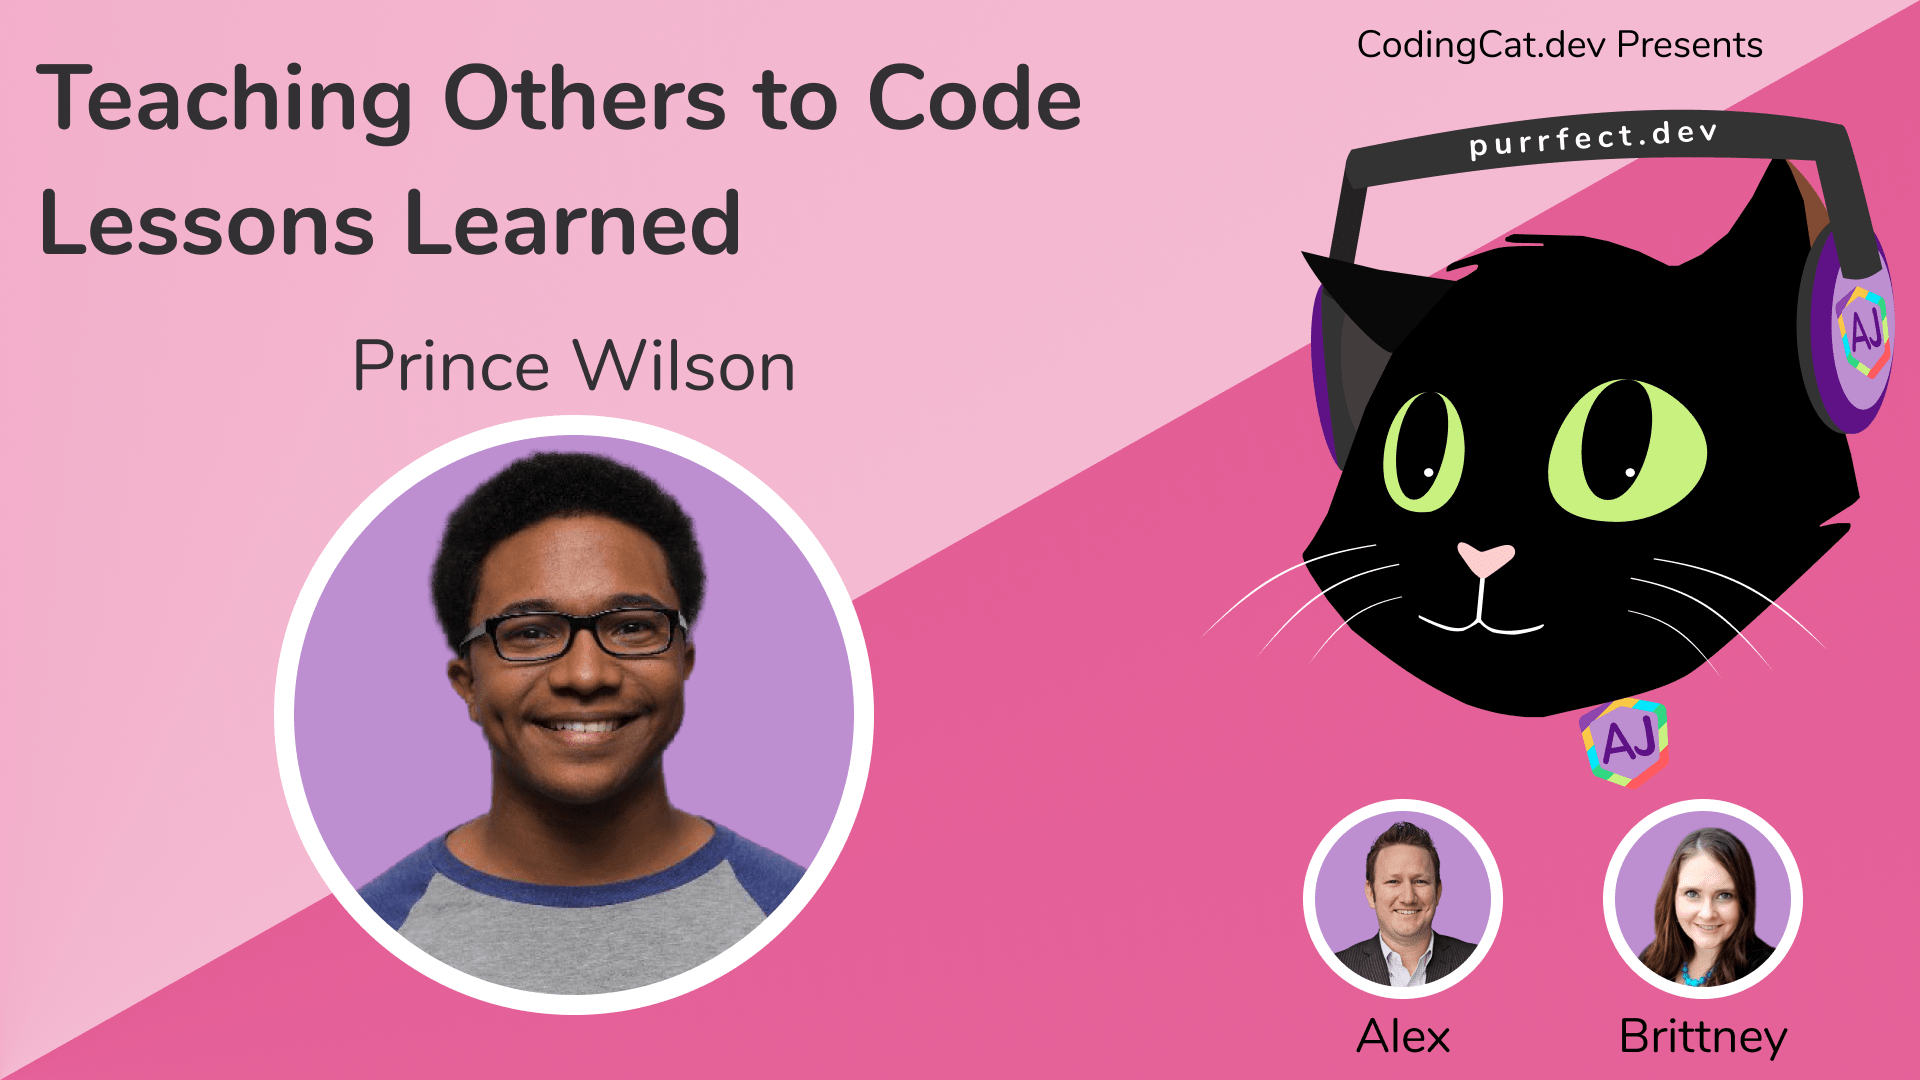 1.19 - Teaching Others to Code Lessons Learned